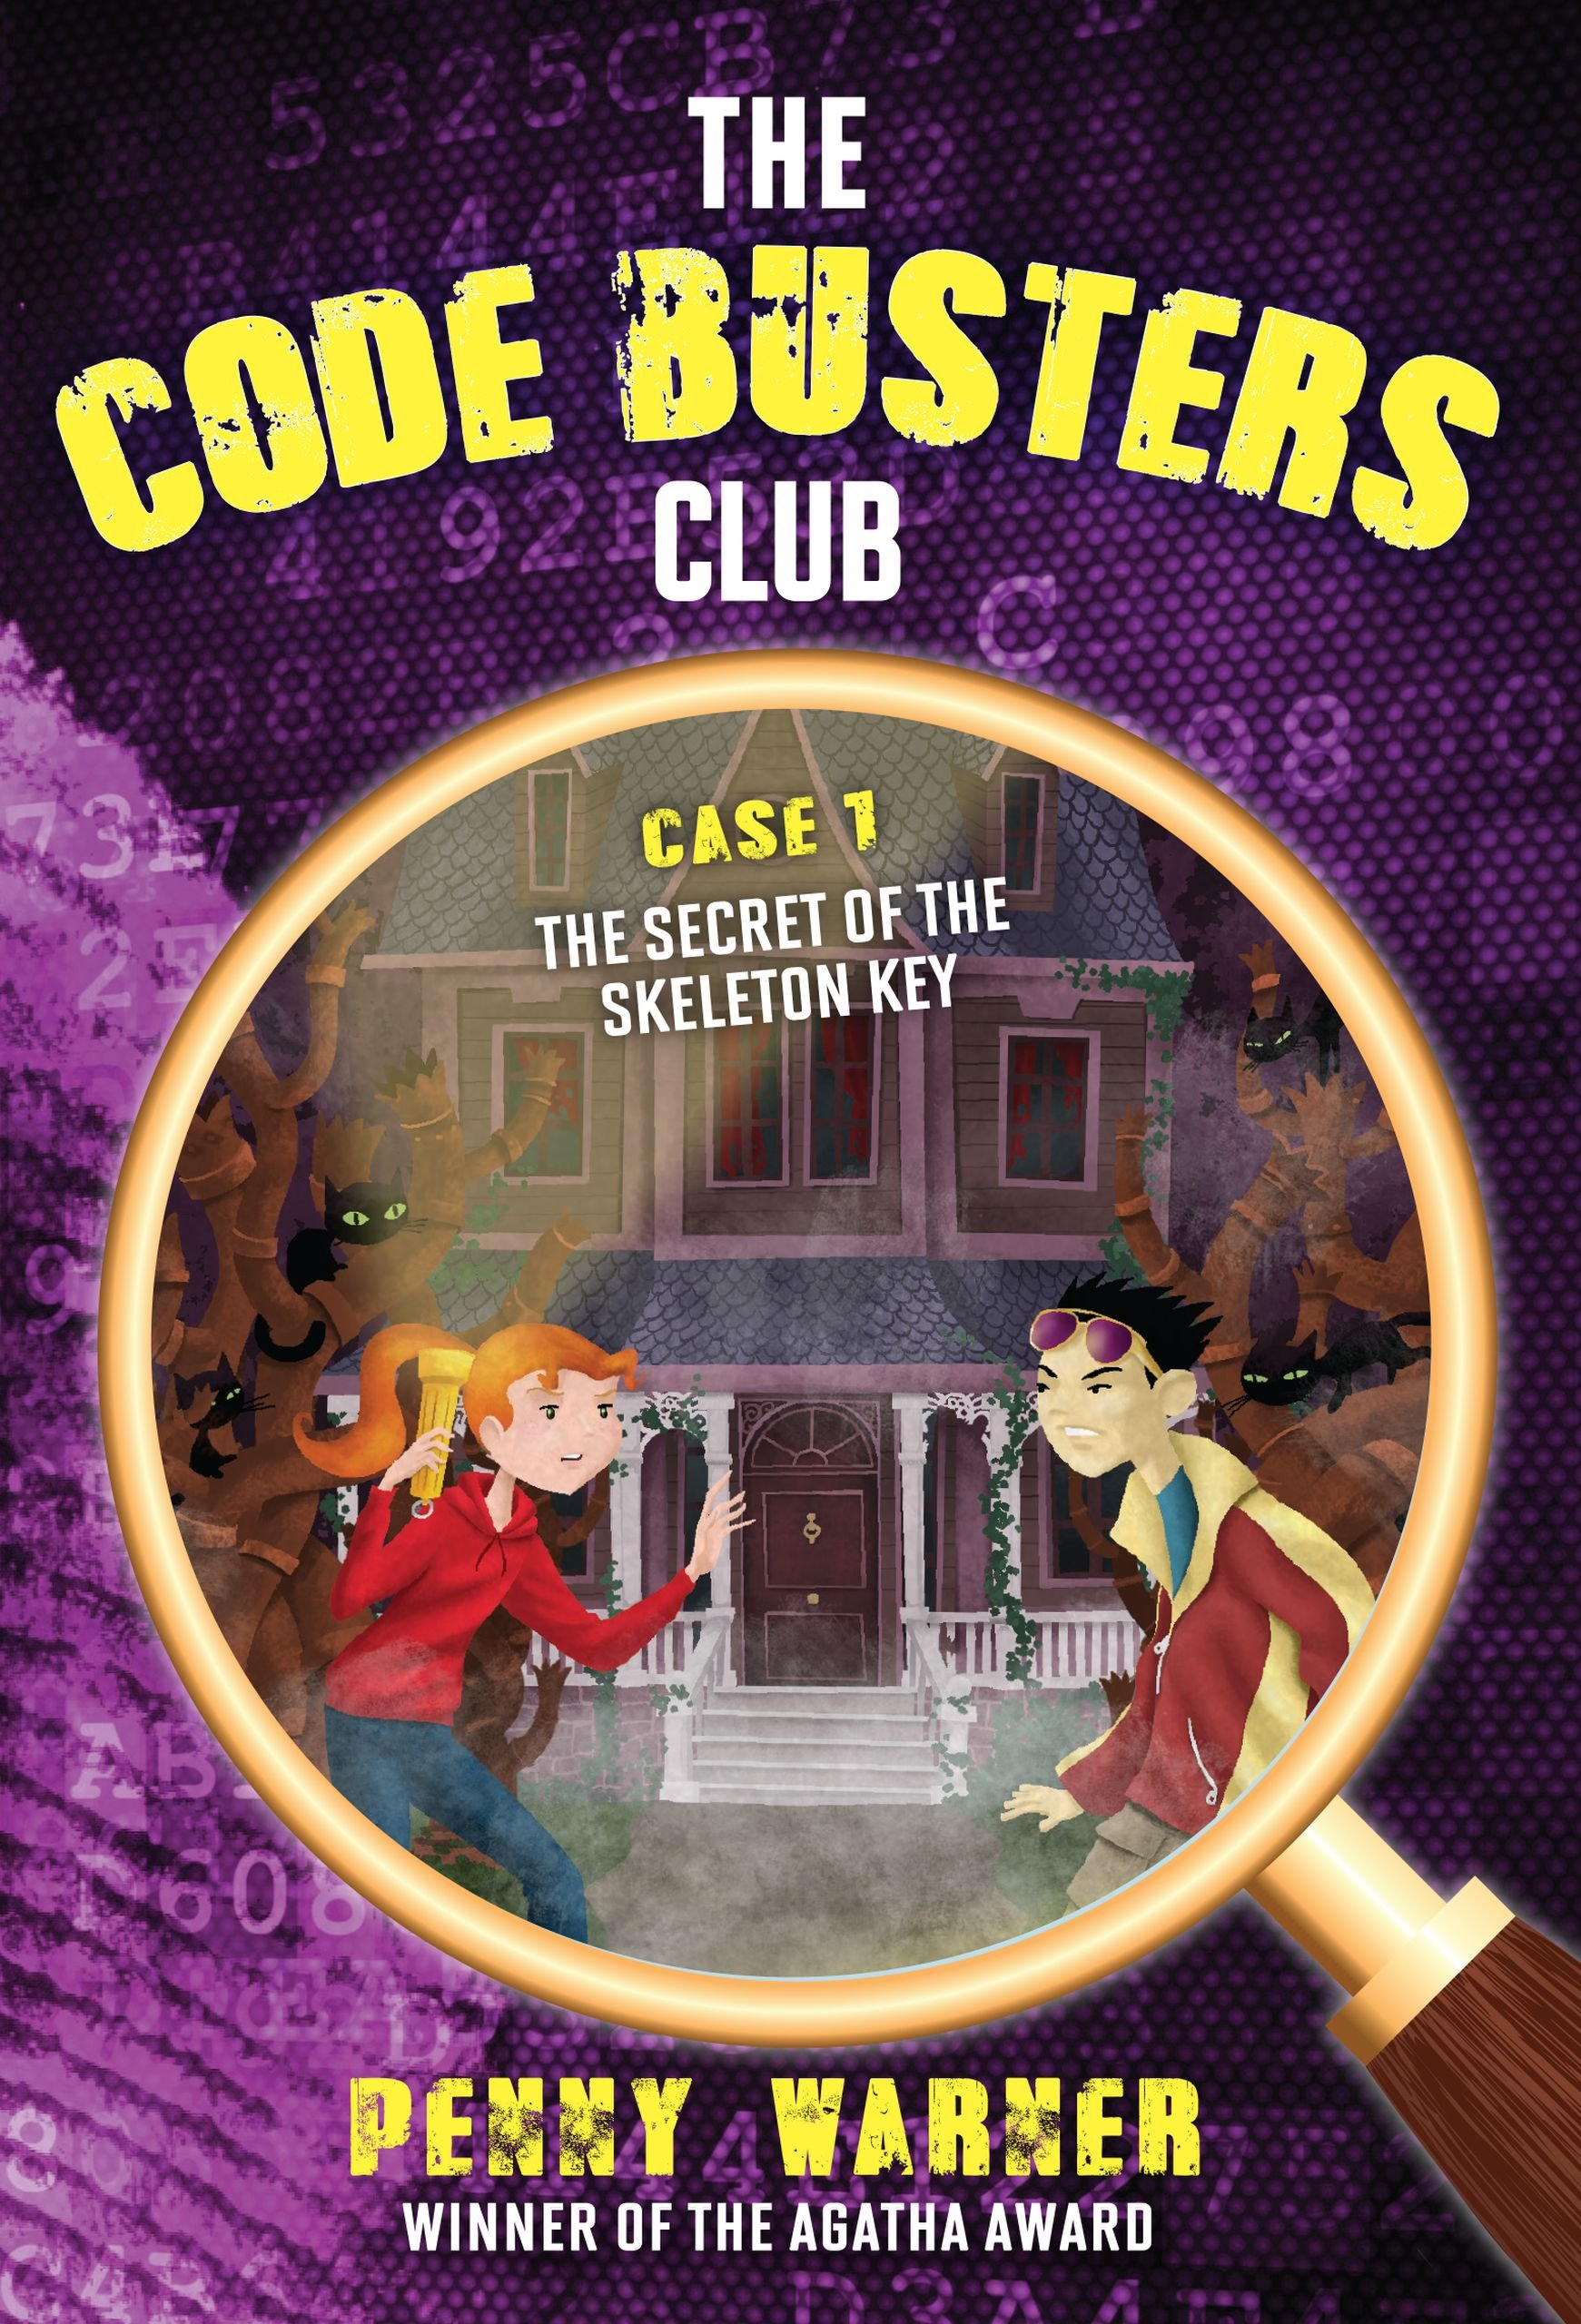 Amazon com: The Secret of the Skeleton Key (The Code Busters